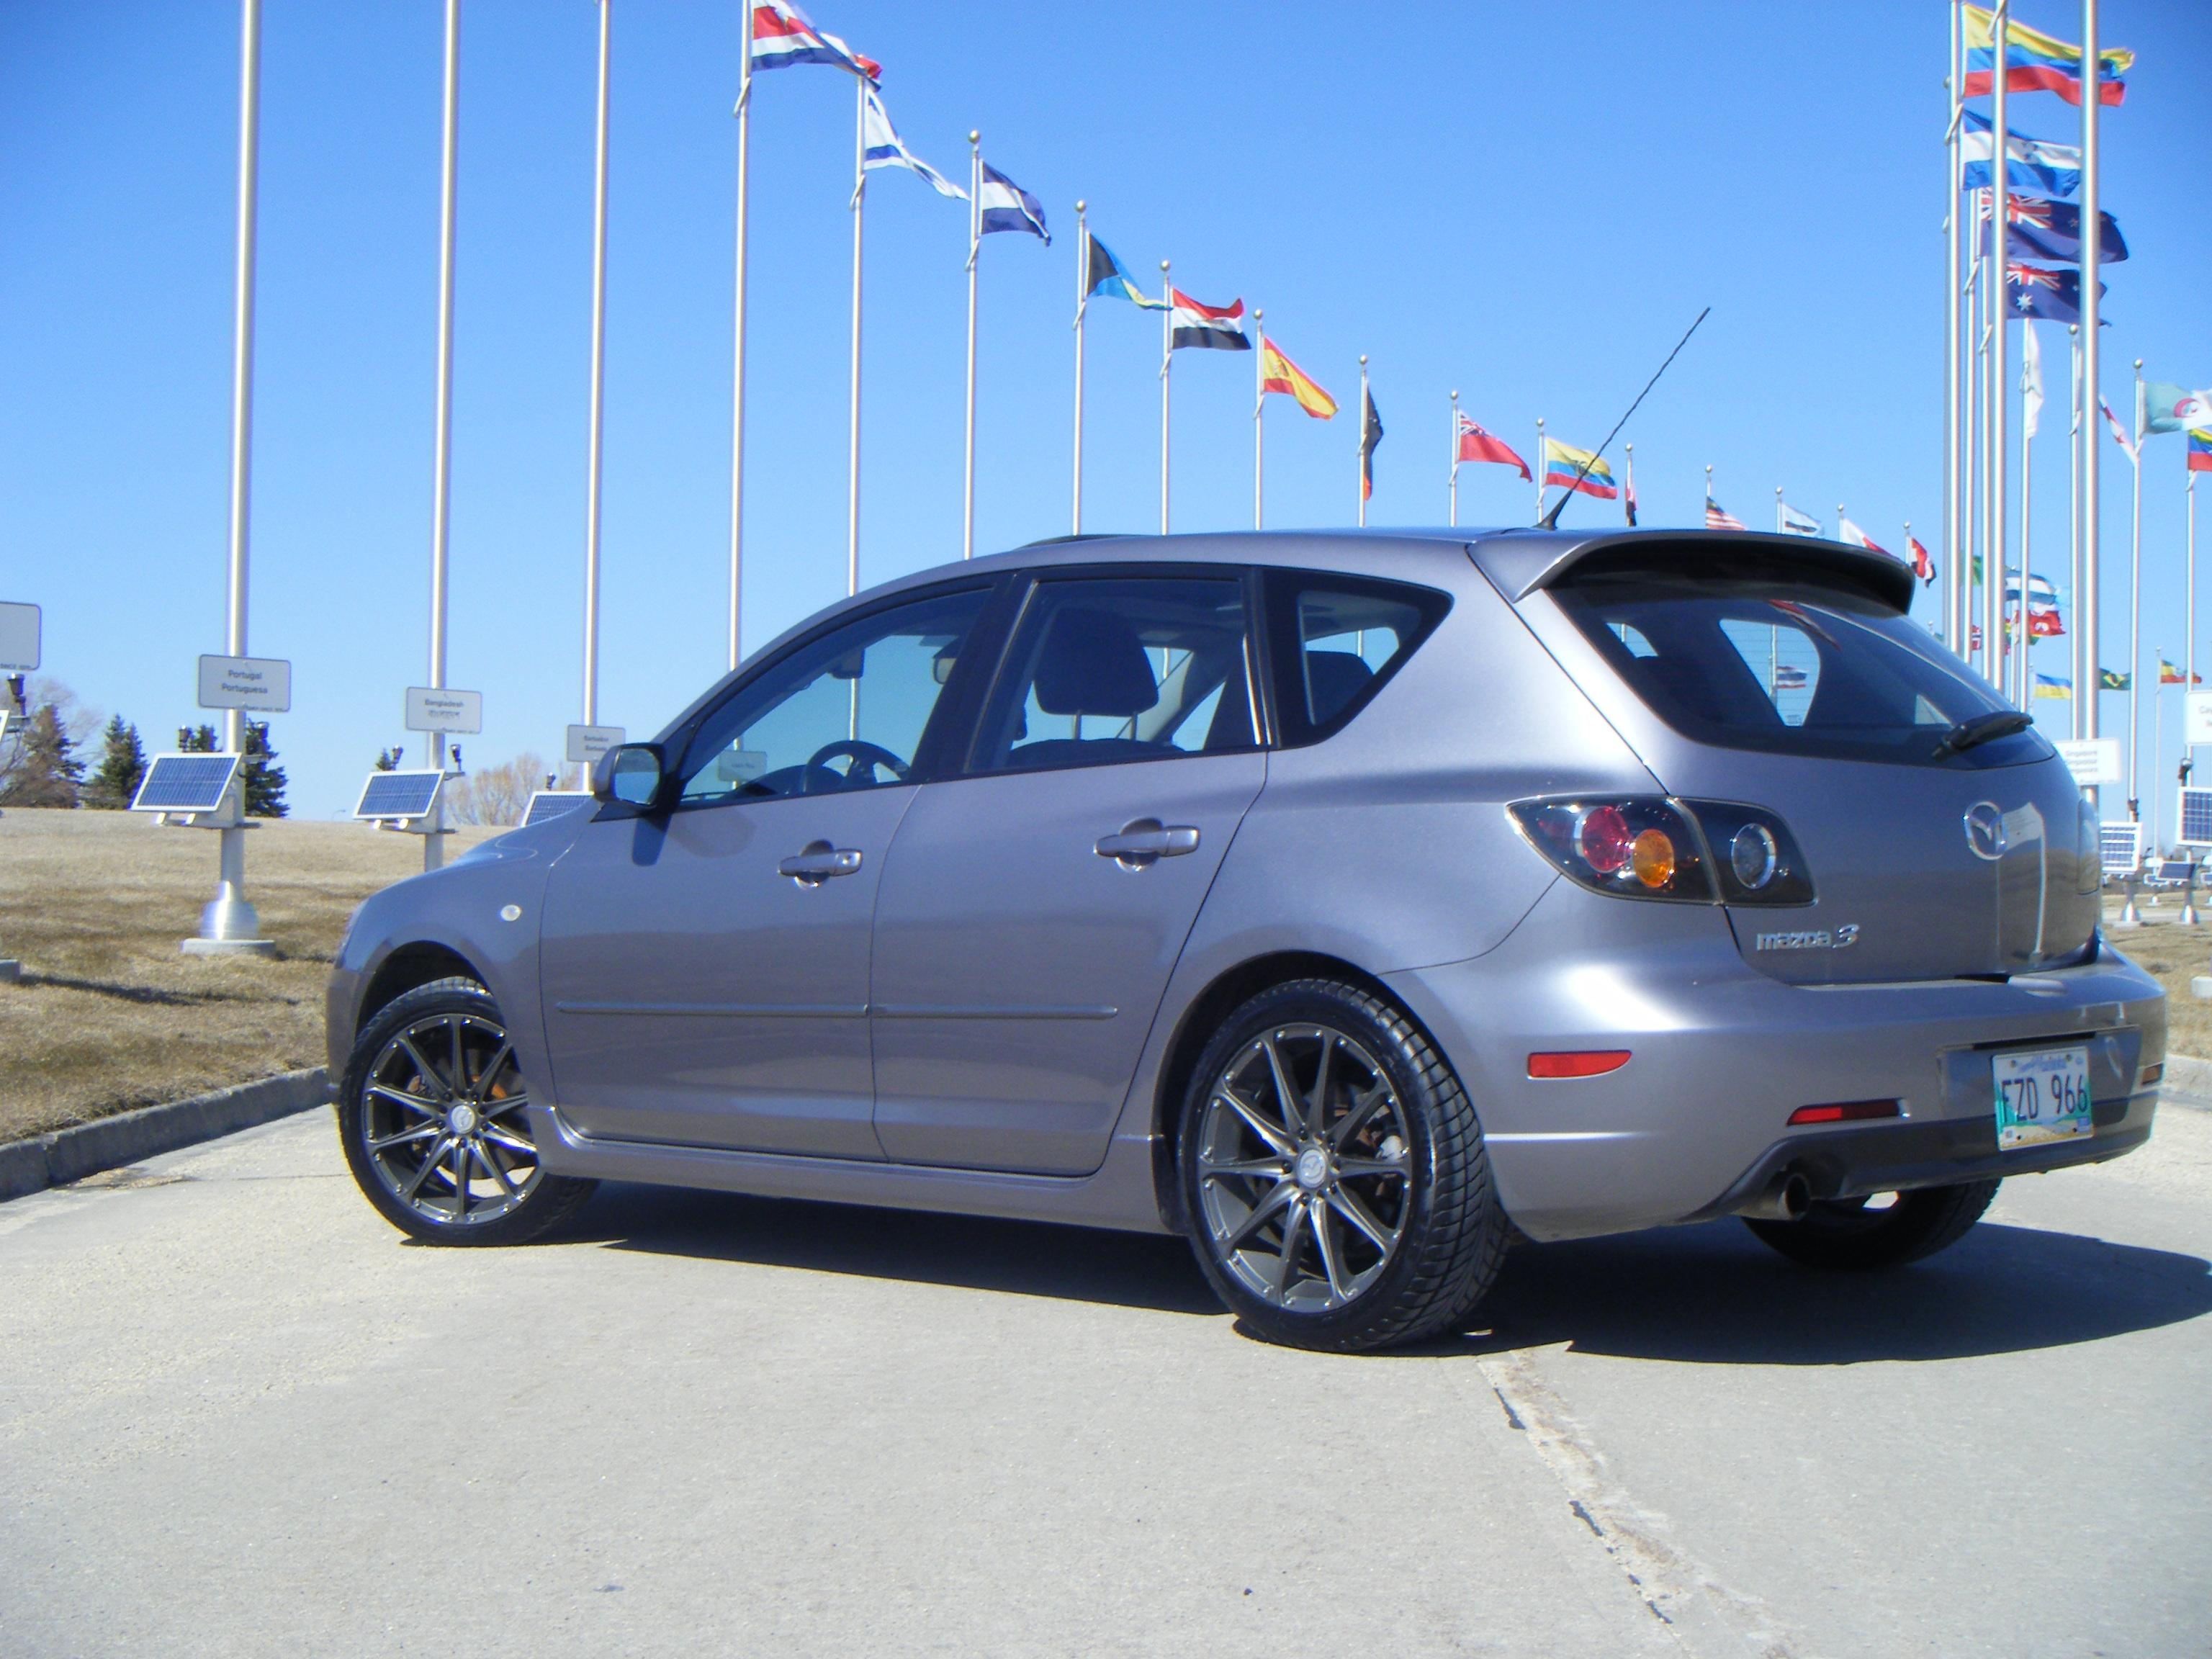 jtm204 2004 mazda mazda3s hatchback 4d specs, photos, modification